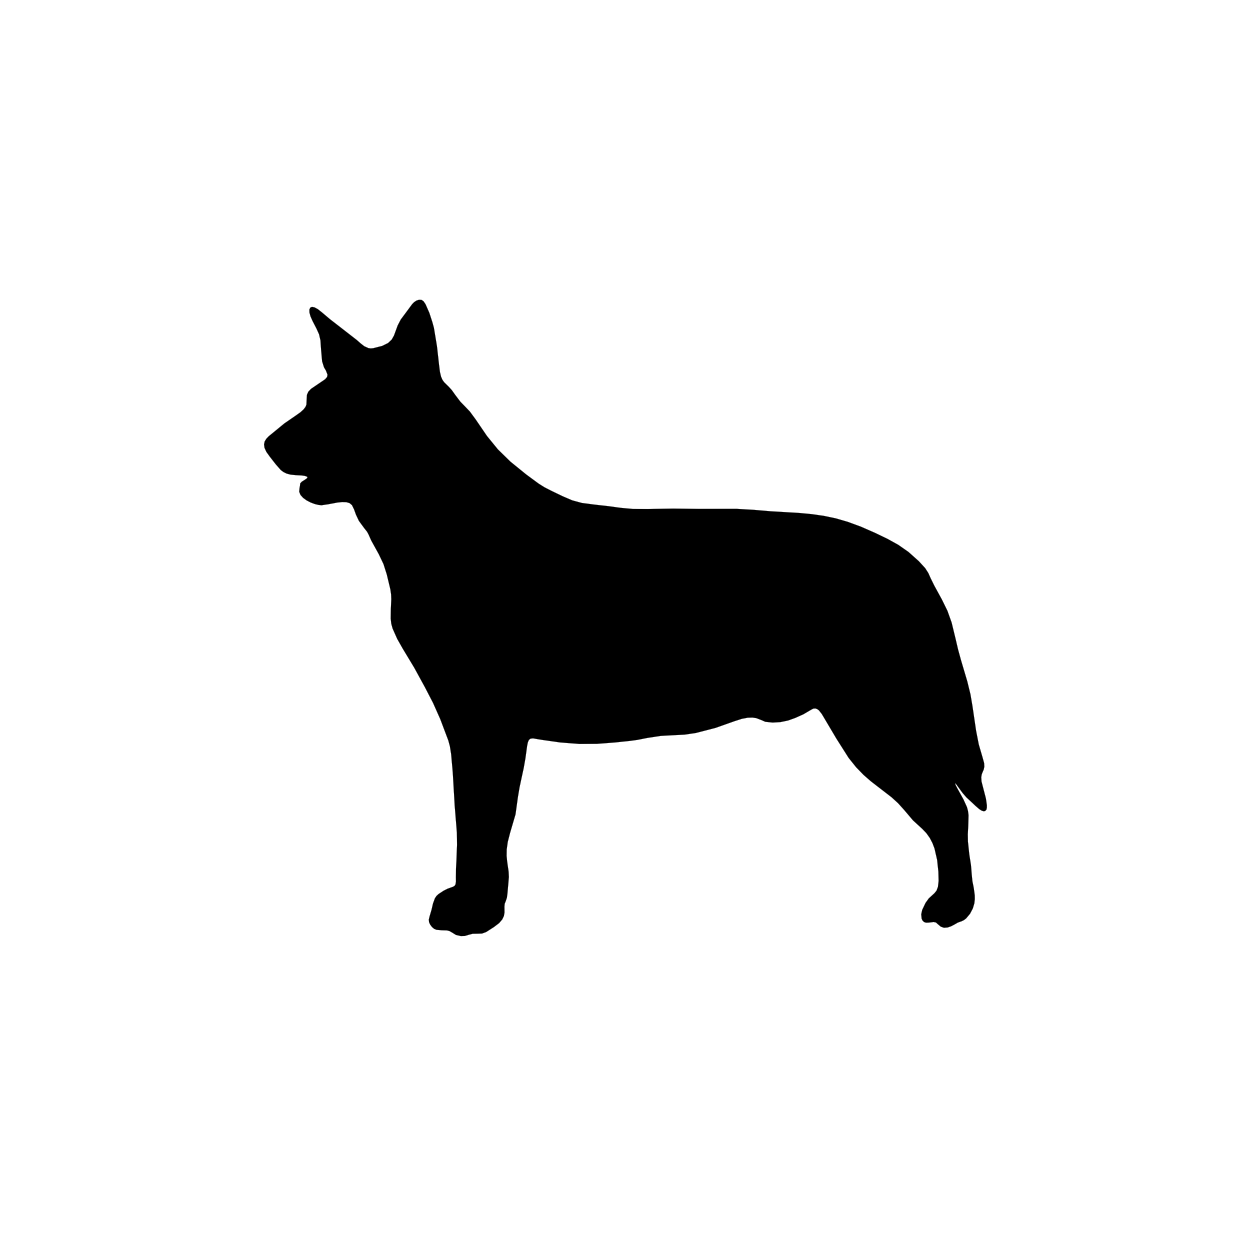 Australian cattle dog clipart picture Cattle Dog Silhouette at GetDrawings.com | Free for personal use ... picture